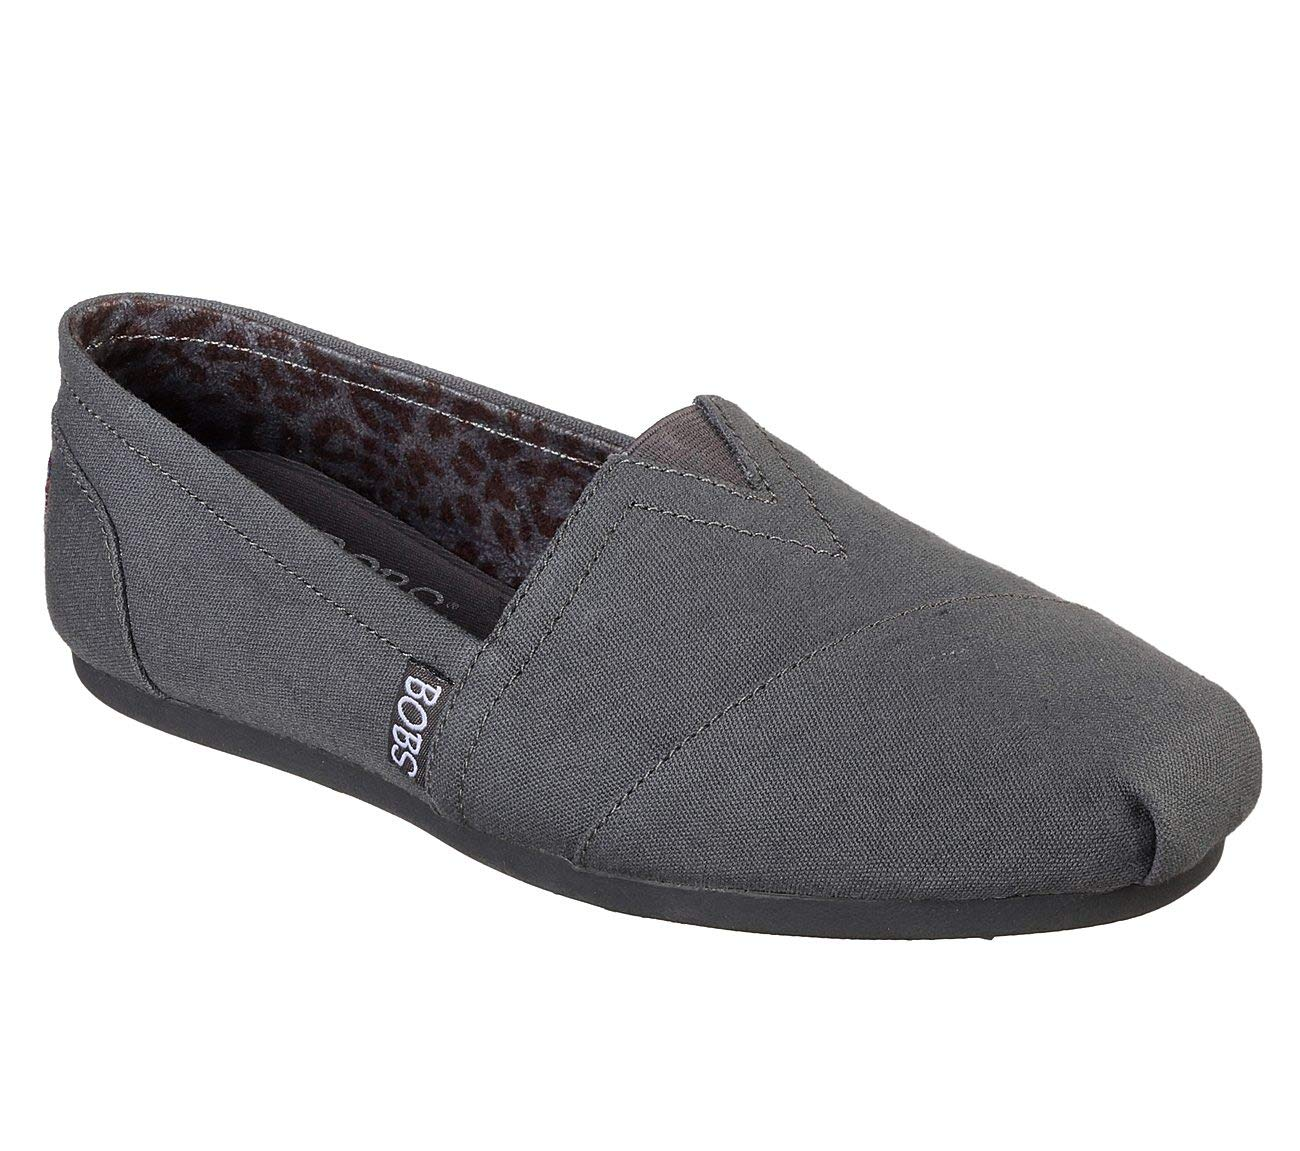 Skechers BOBS Women's Plush - Peace and Love Ballet Flat, Dark Grey, 9 M US